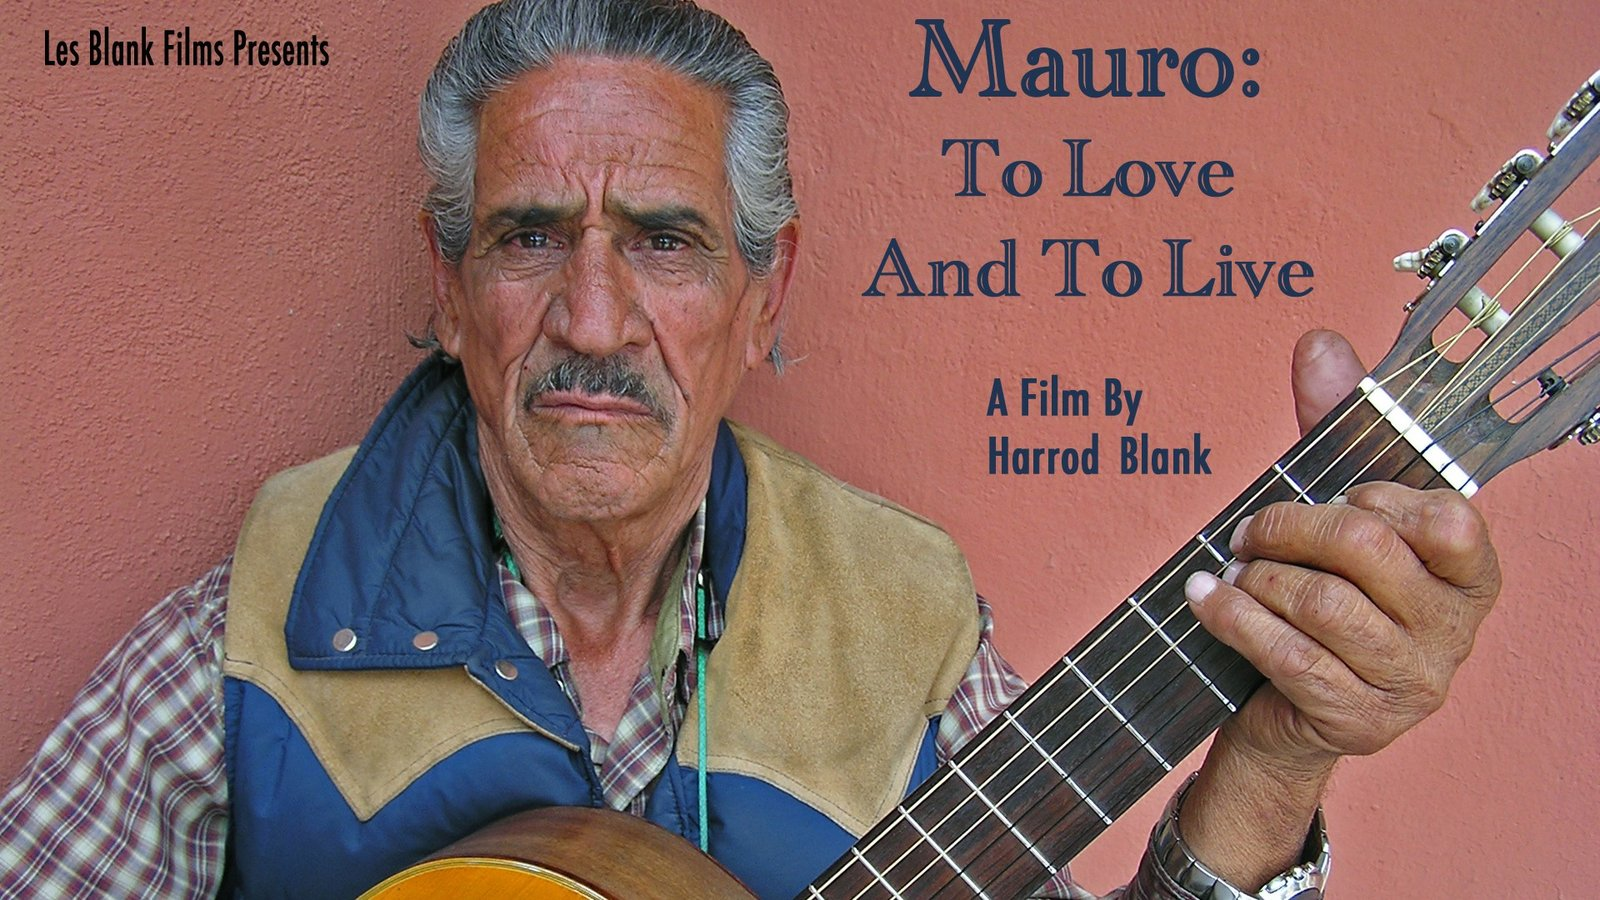 Mauro: To Love and Live